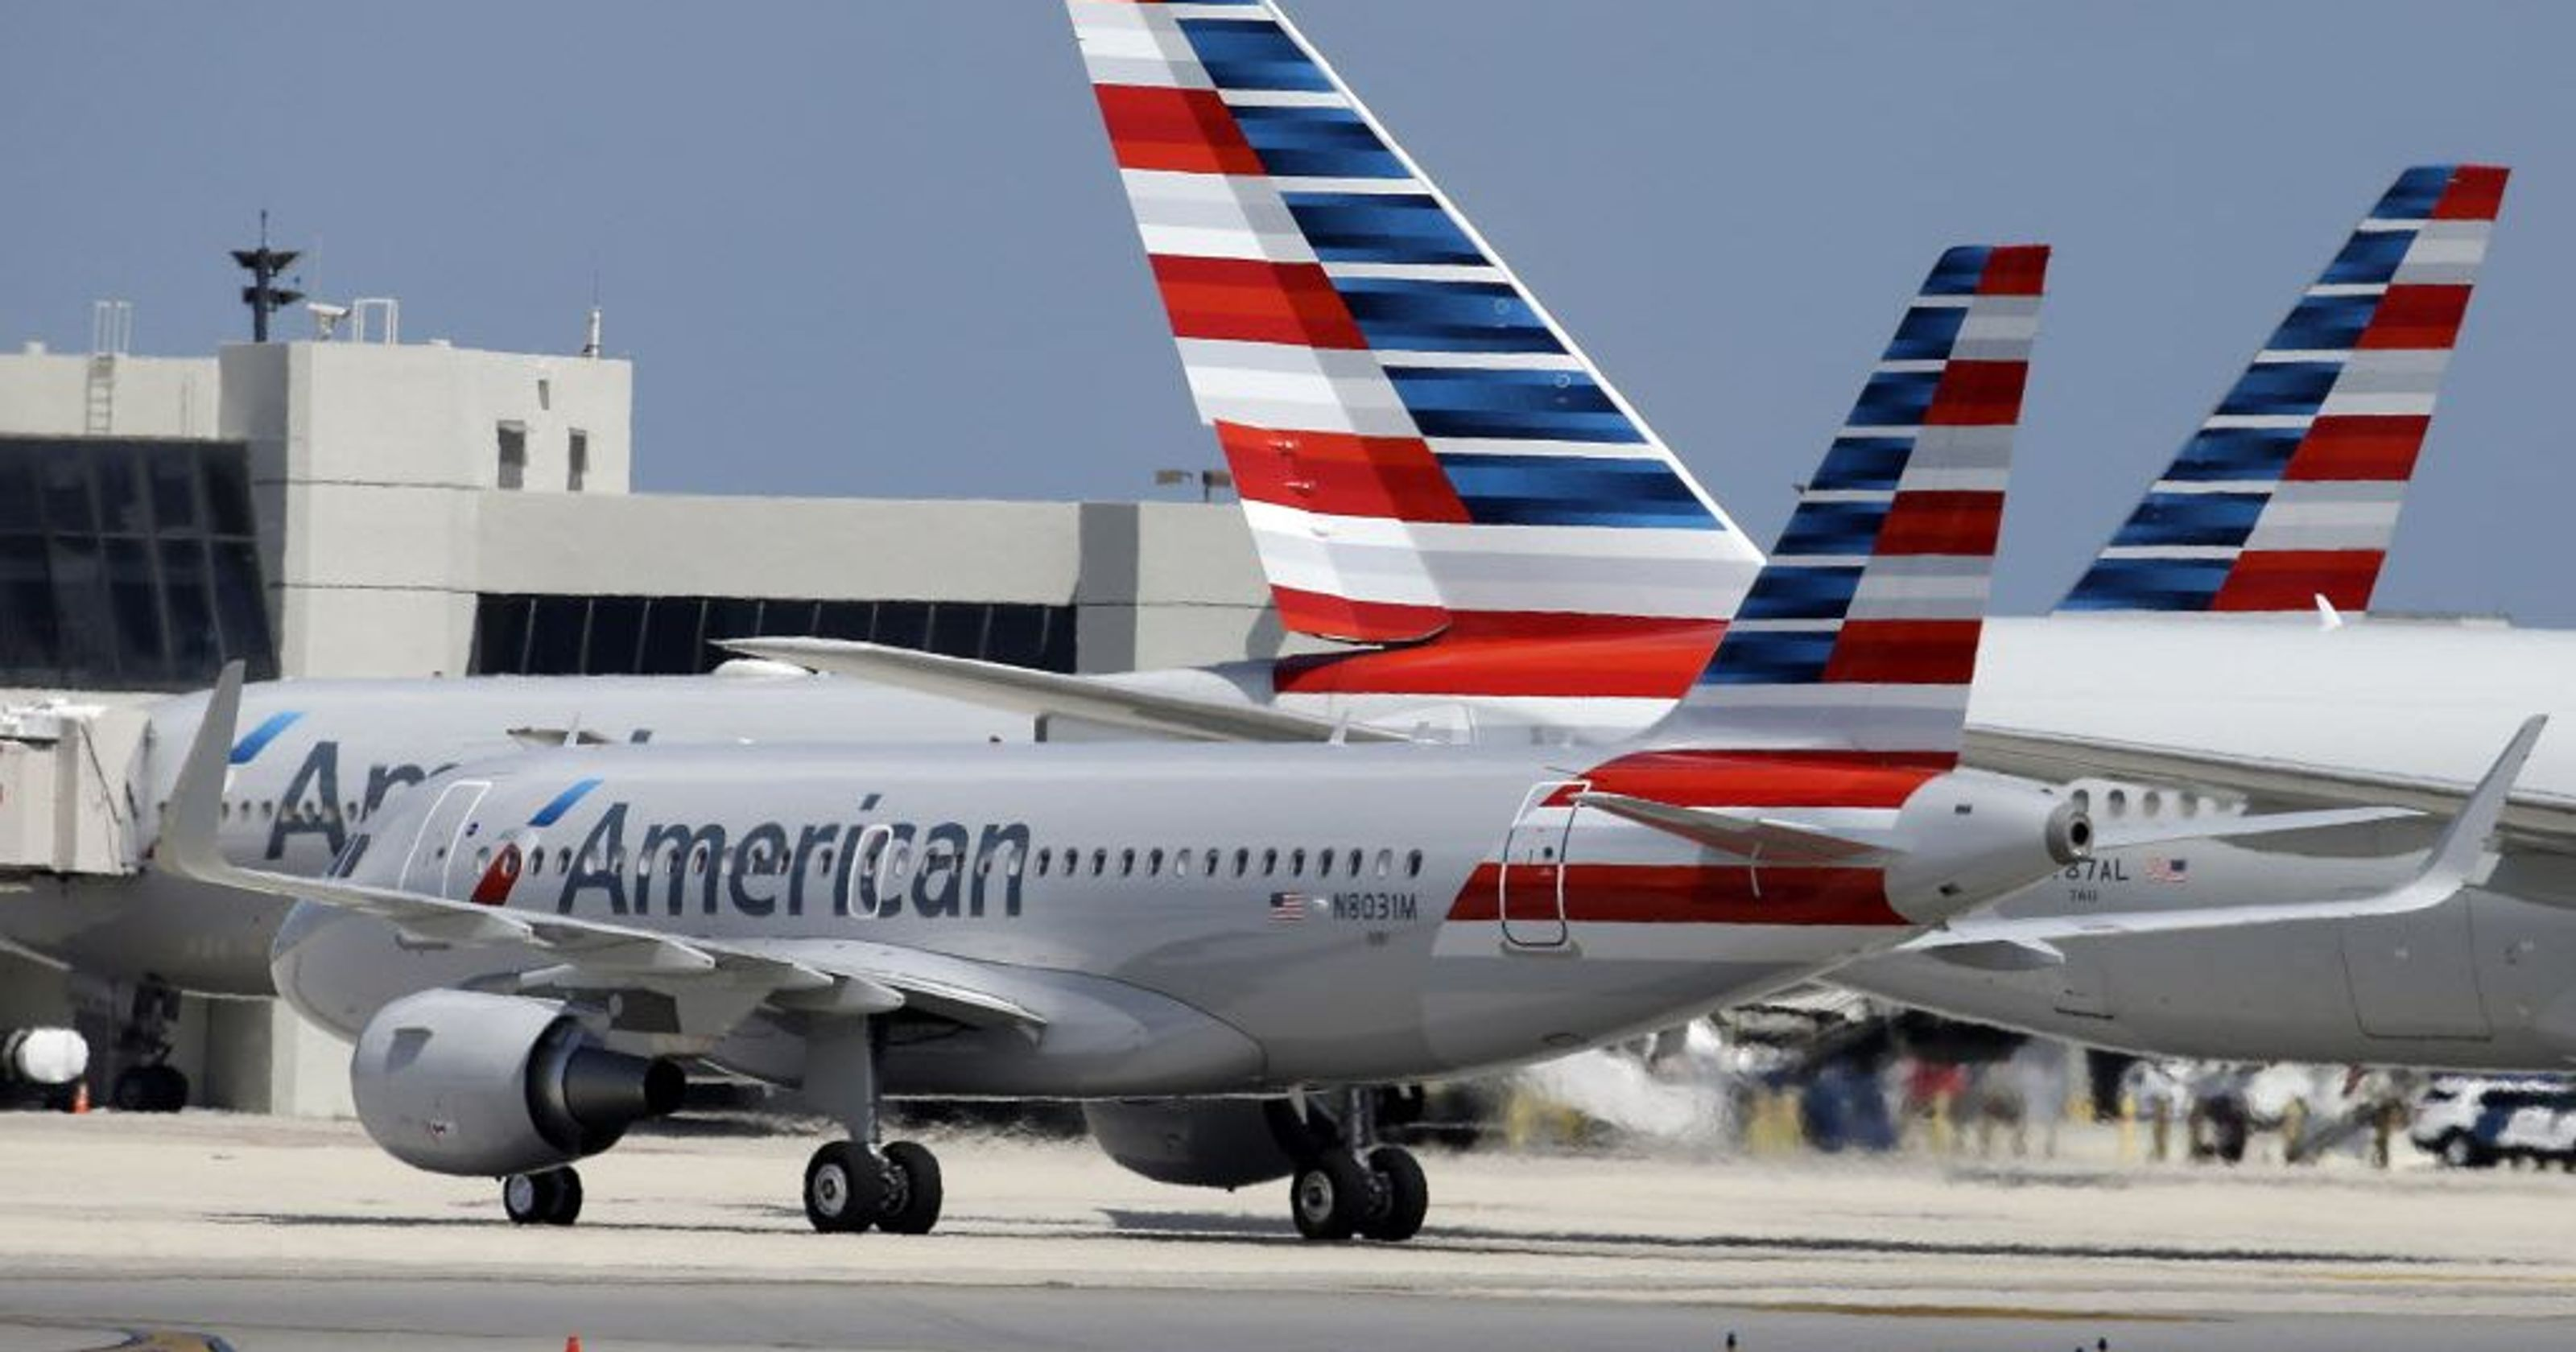 Free Live TV coming to up to 700 planes Travel advisory